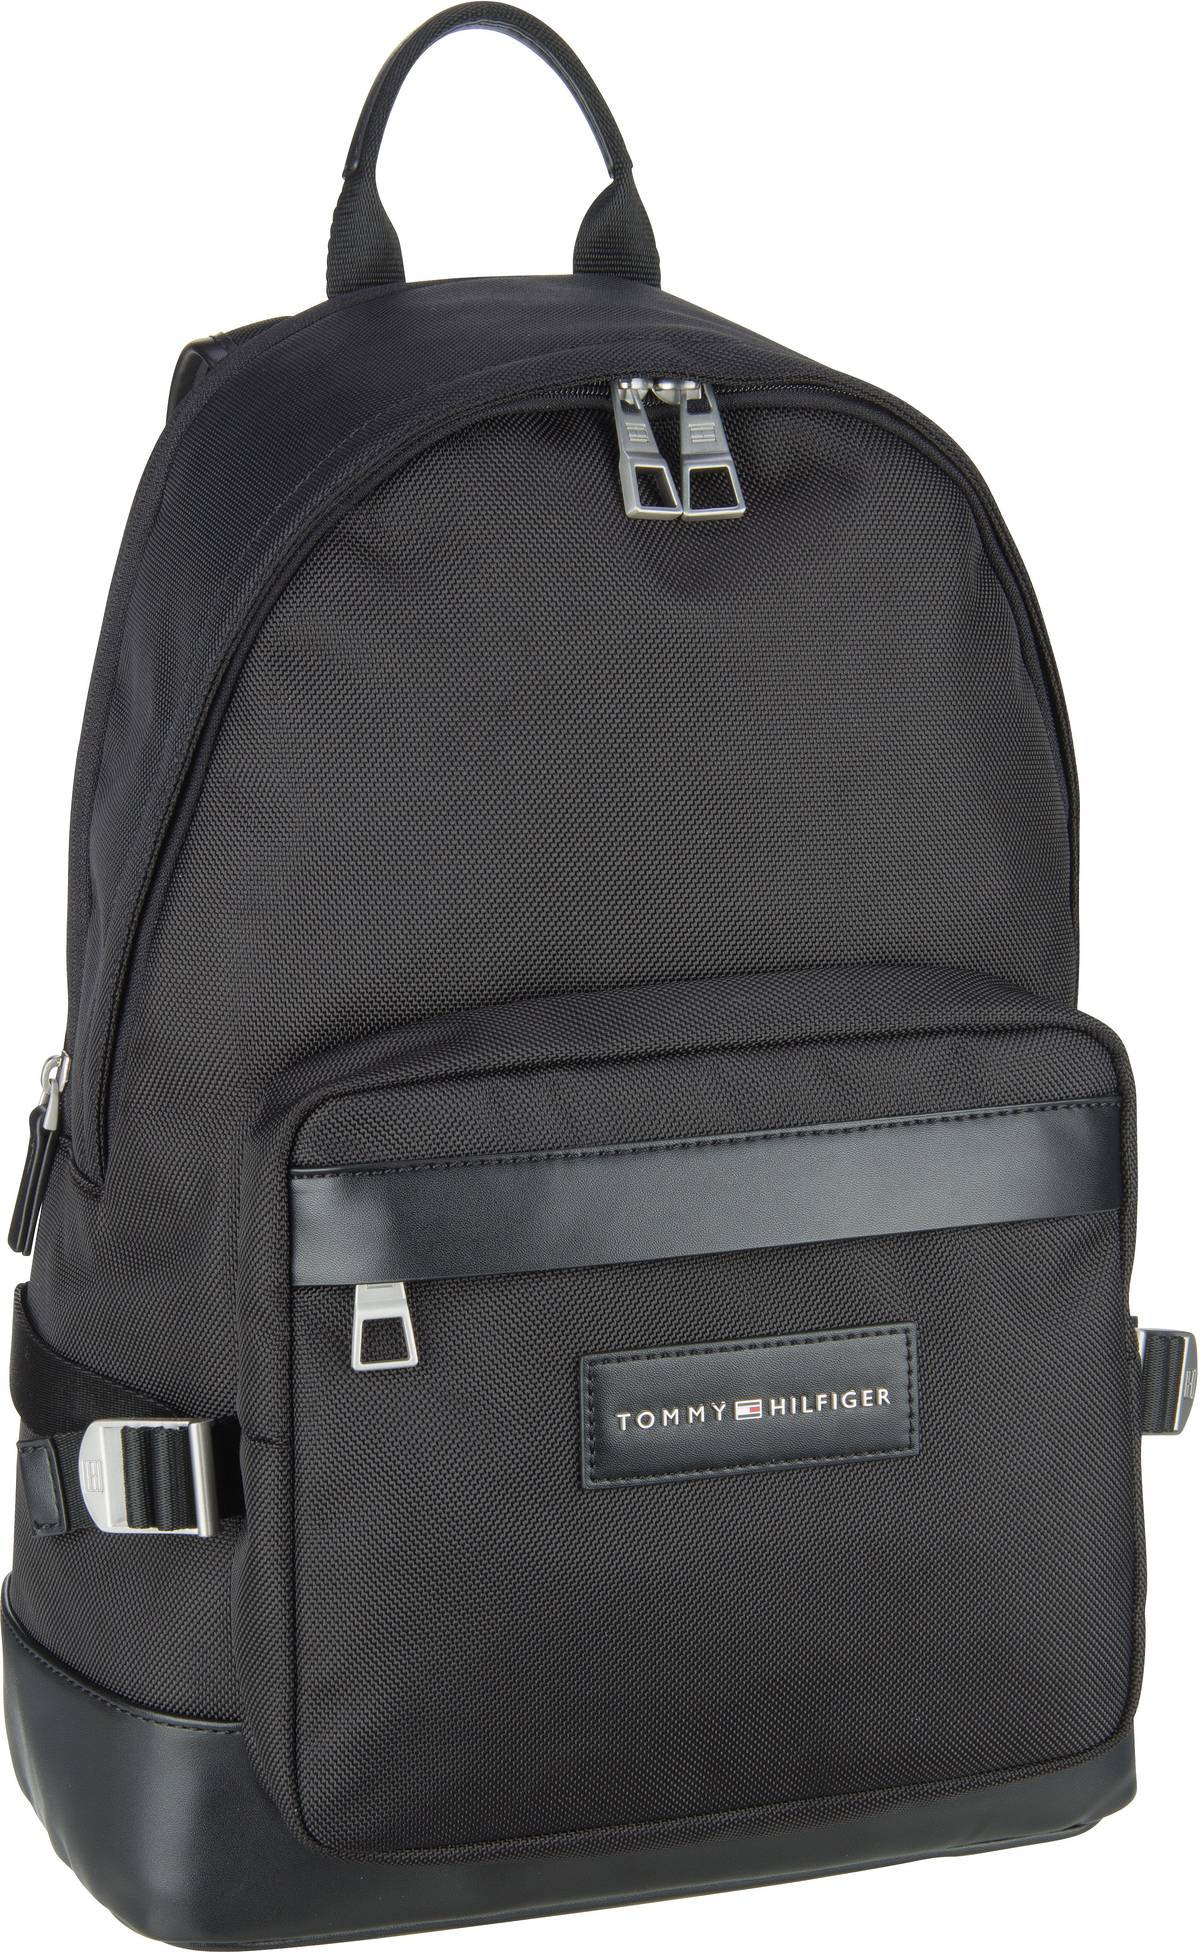 tommy hilfiger -  Laptoprucksack Uptown Nylon Backpack PF20 Black